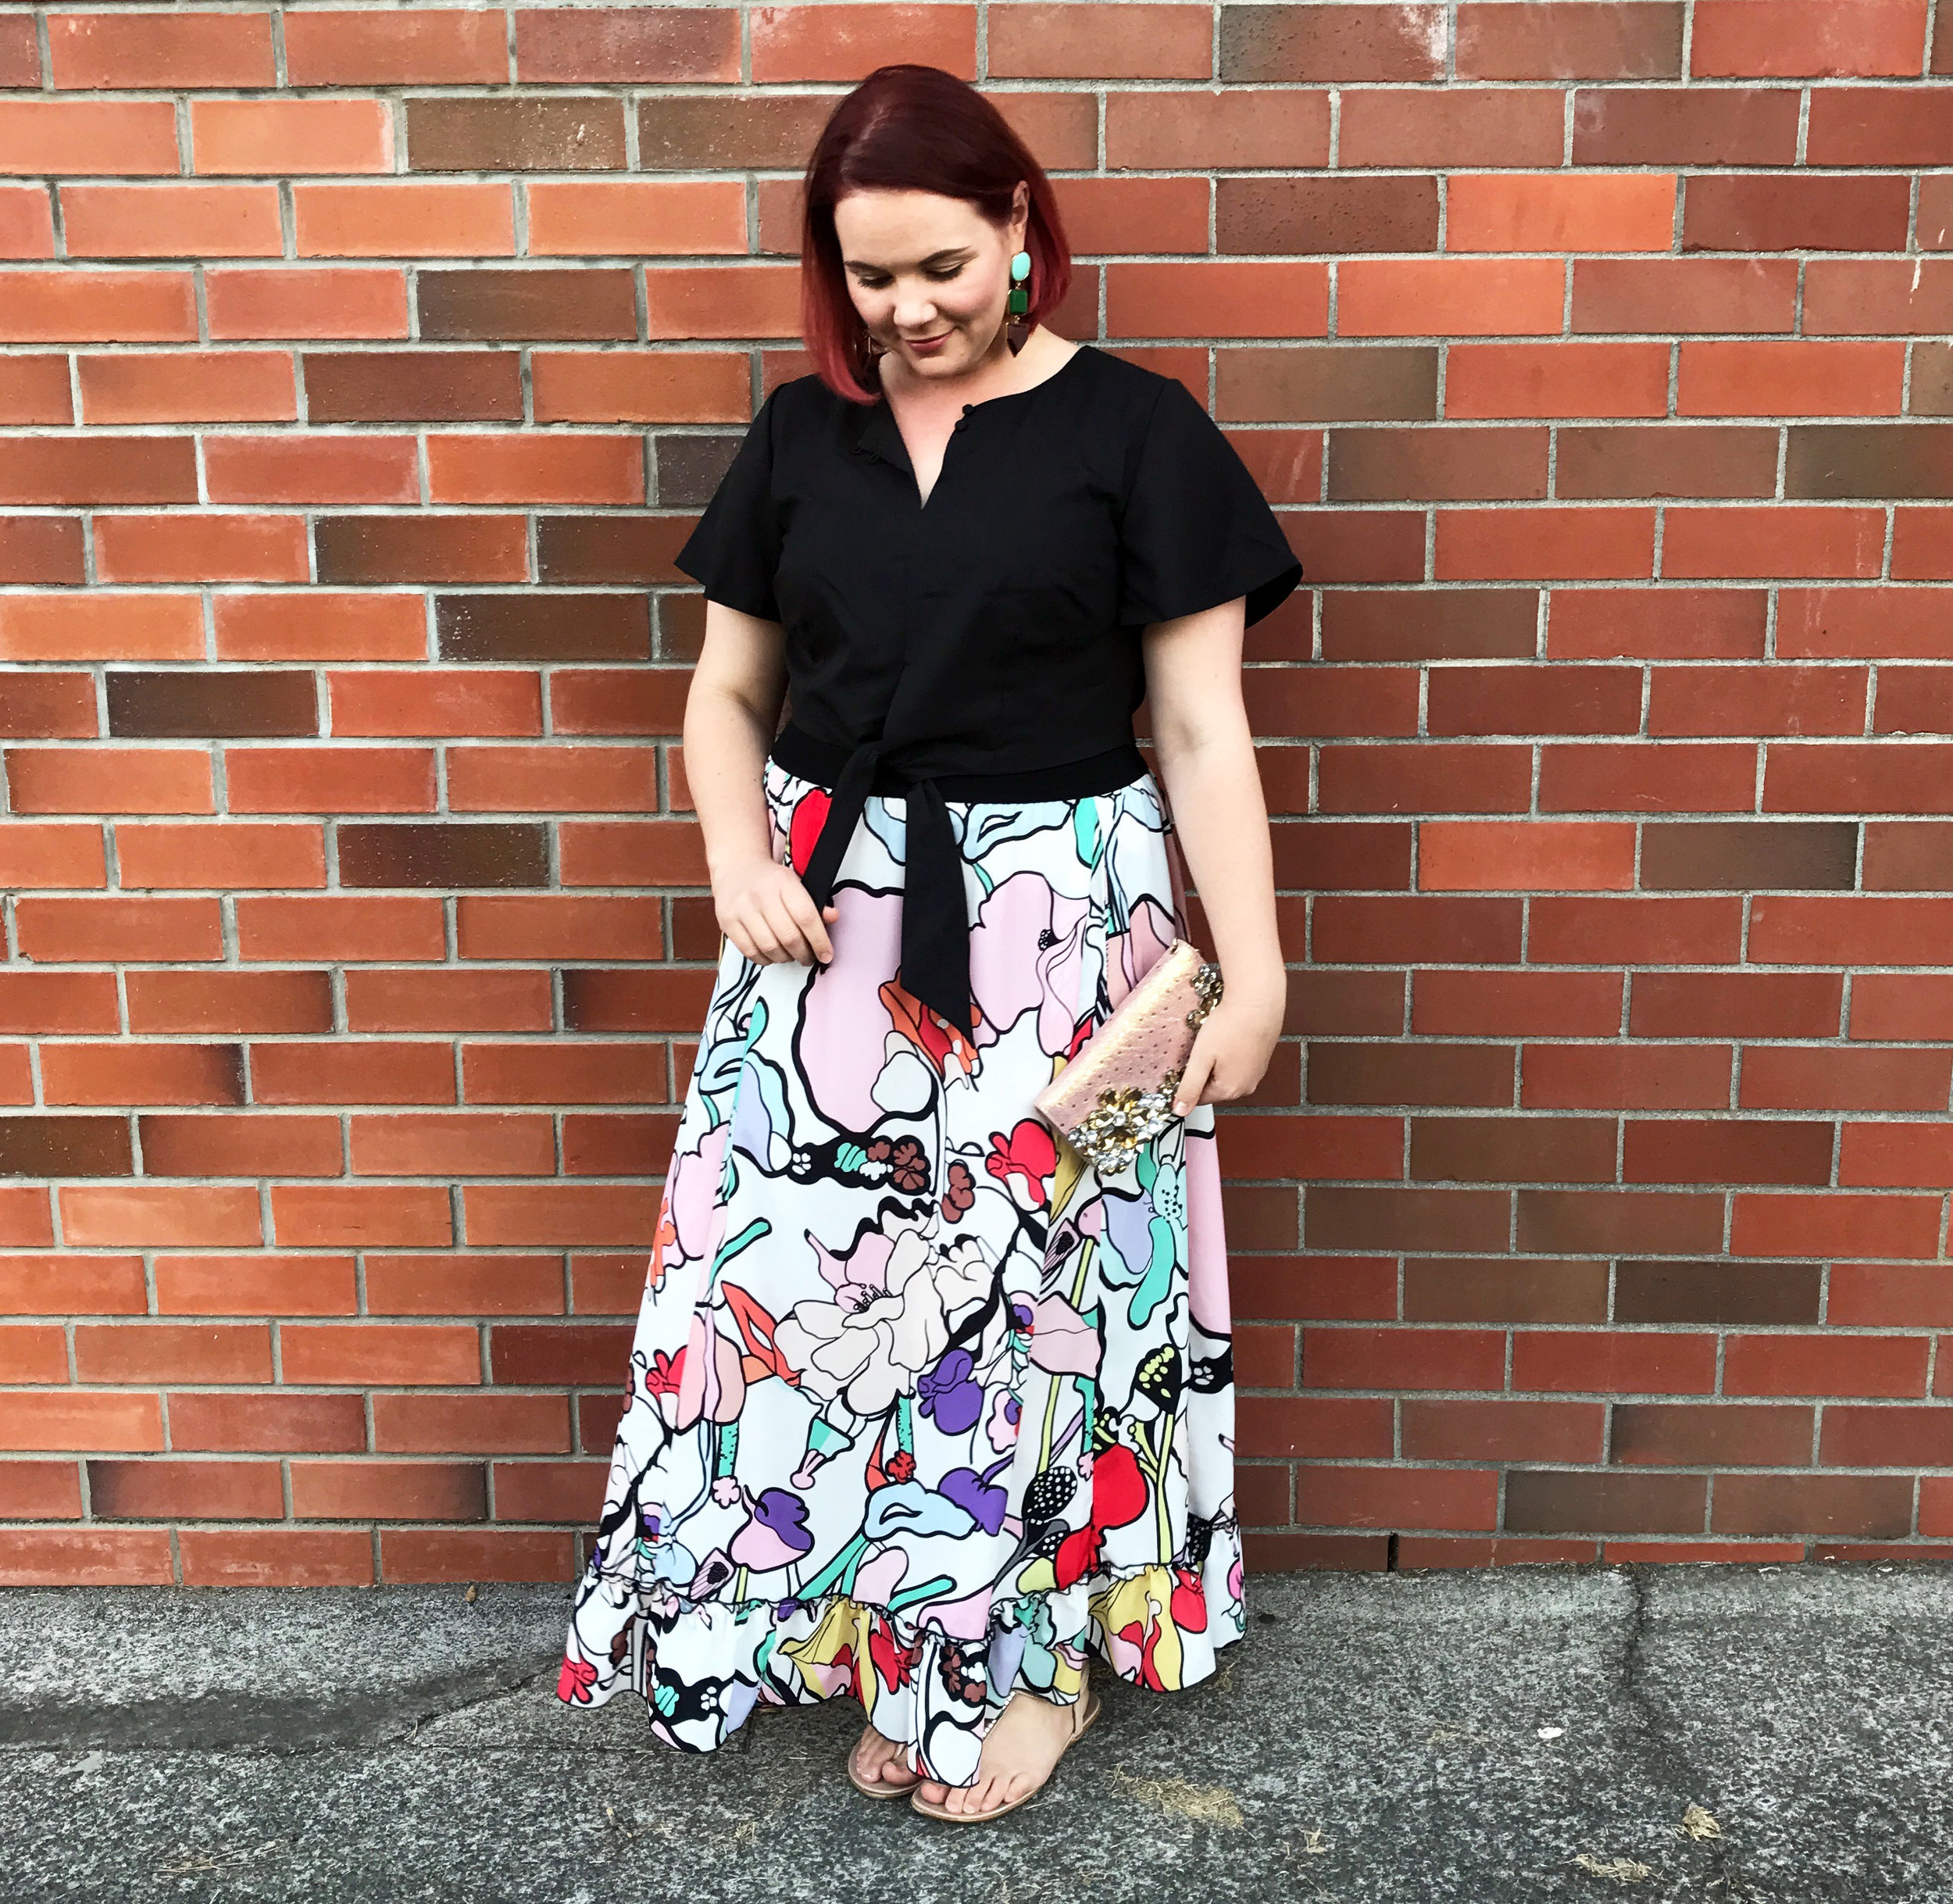 S  kirt by COOP (only size small left - I am wearing a Large), sandals by Novo Shoes, Earrings from H&M, clutch was a Trademe purchase.